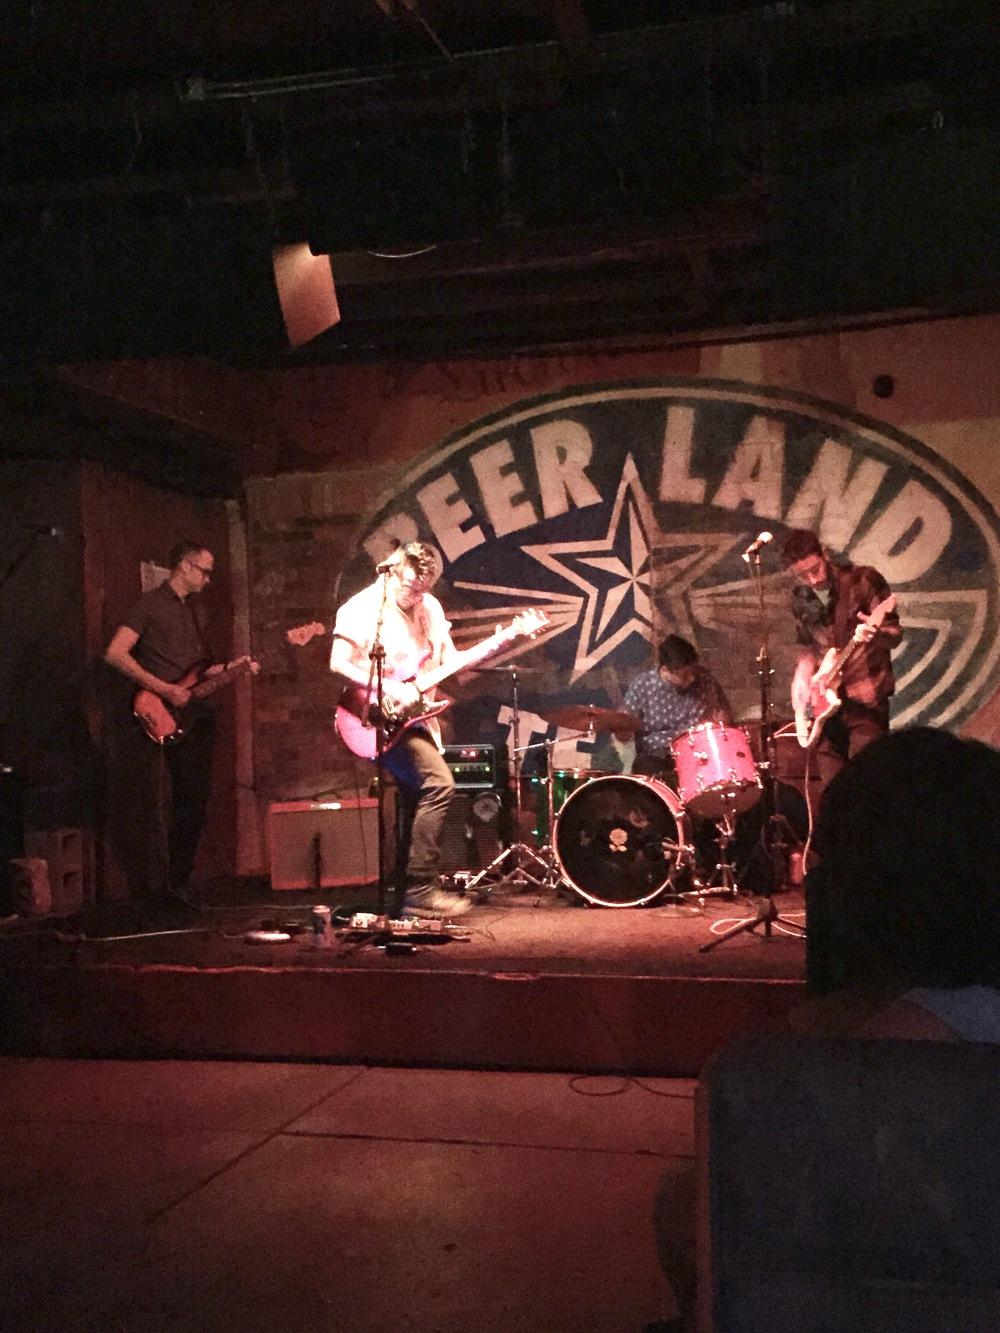 Surfer rock at Beer Land